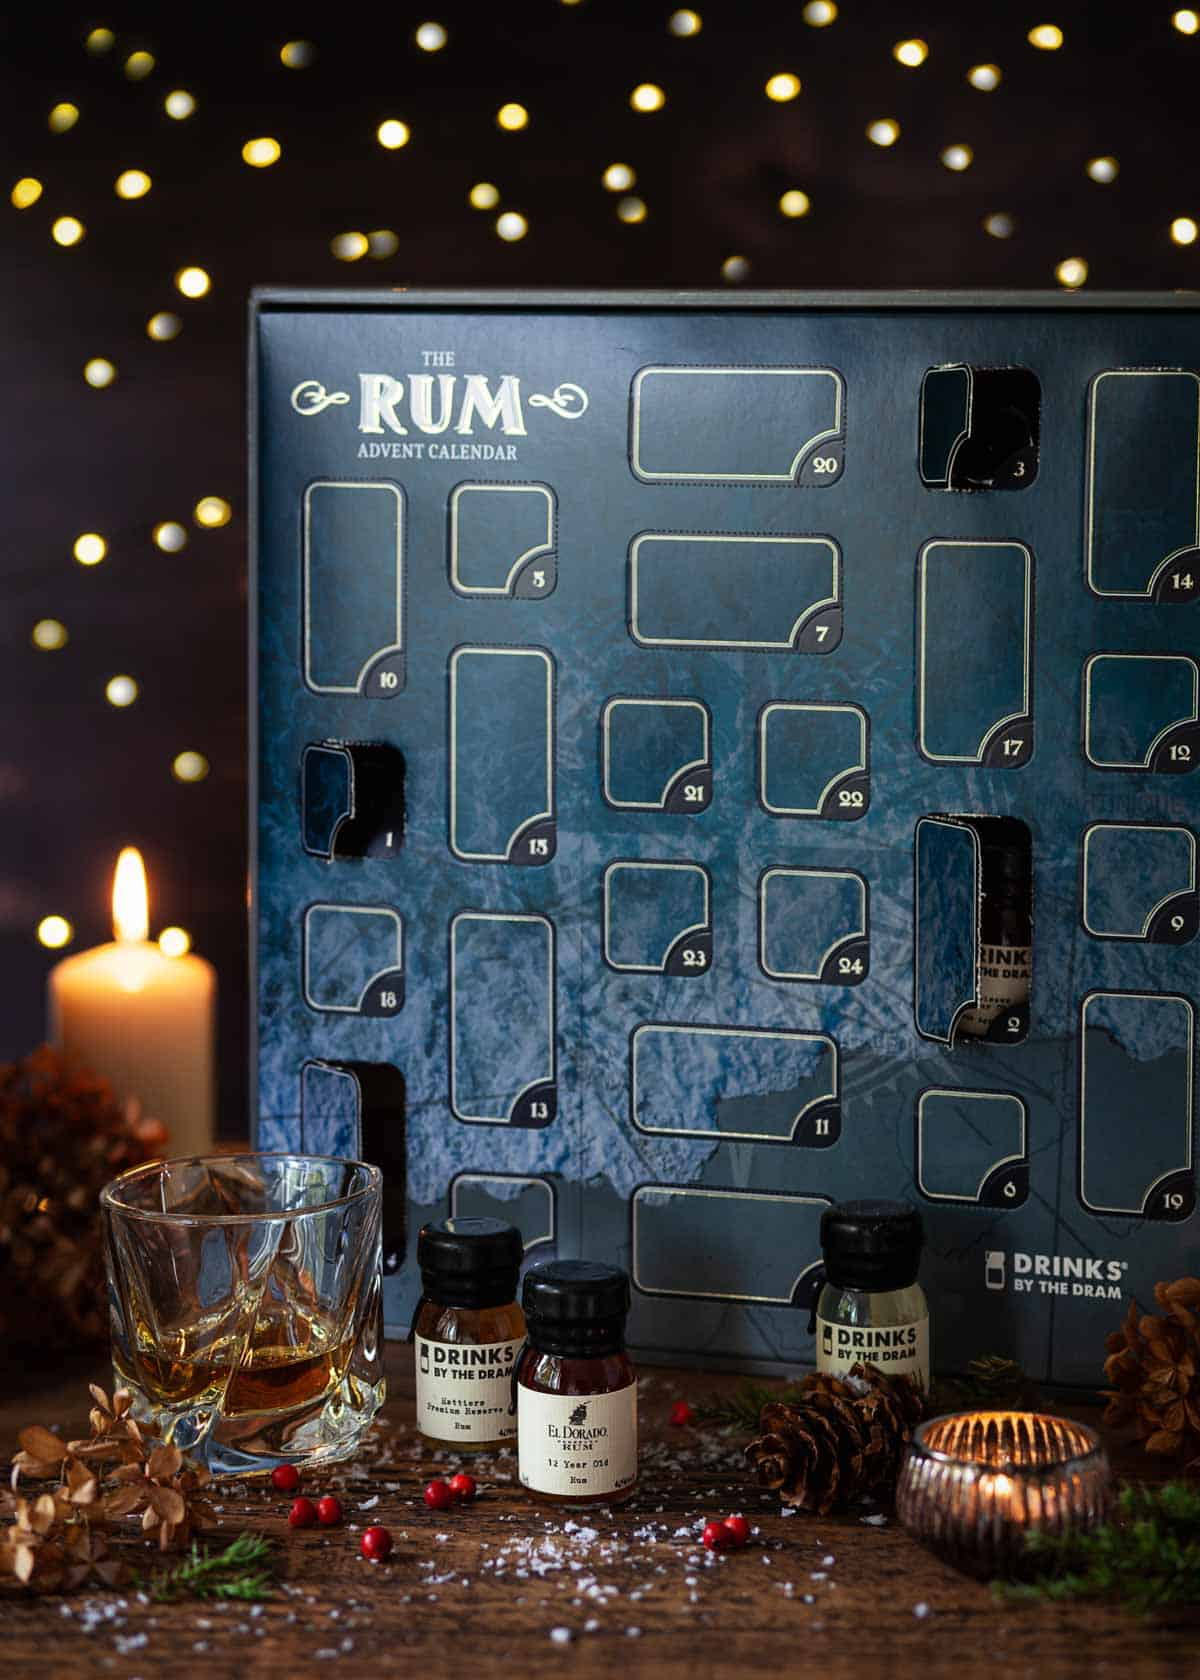 An alcoholic advent calendar